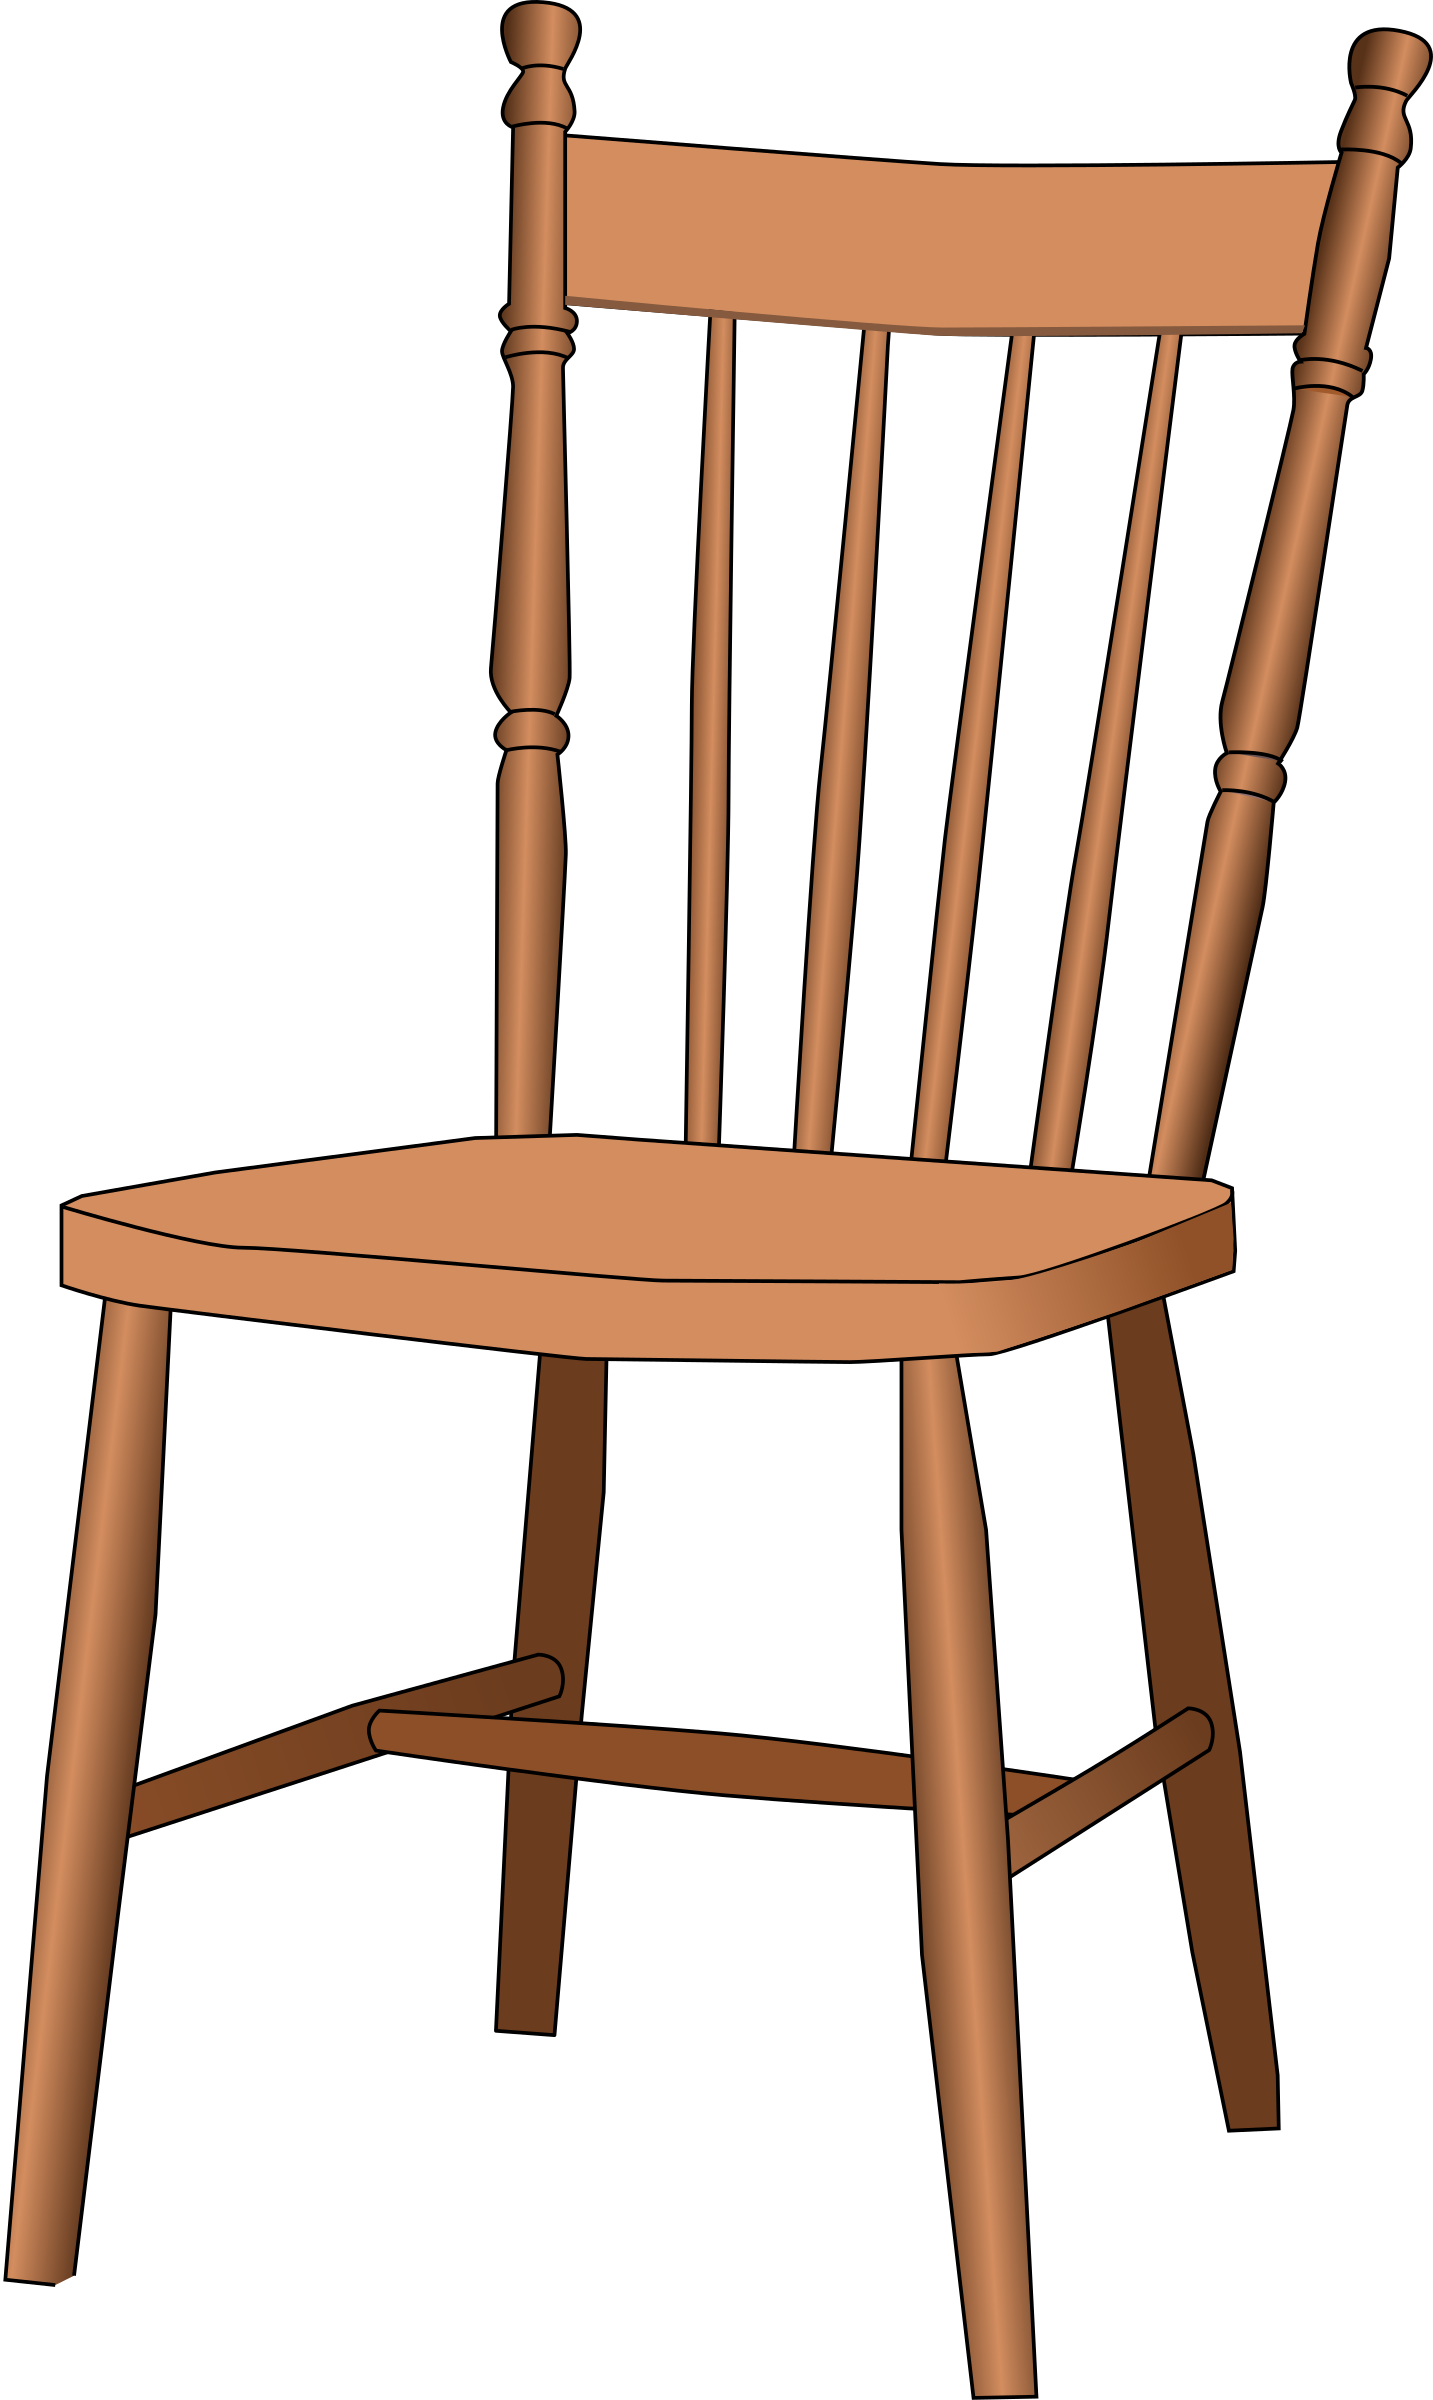 Chair clip art clipart best for Artistic chairs